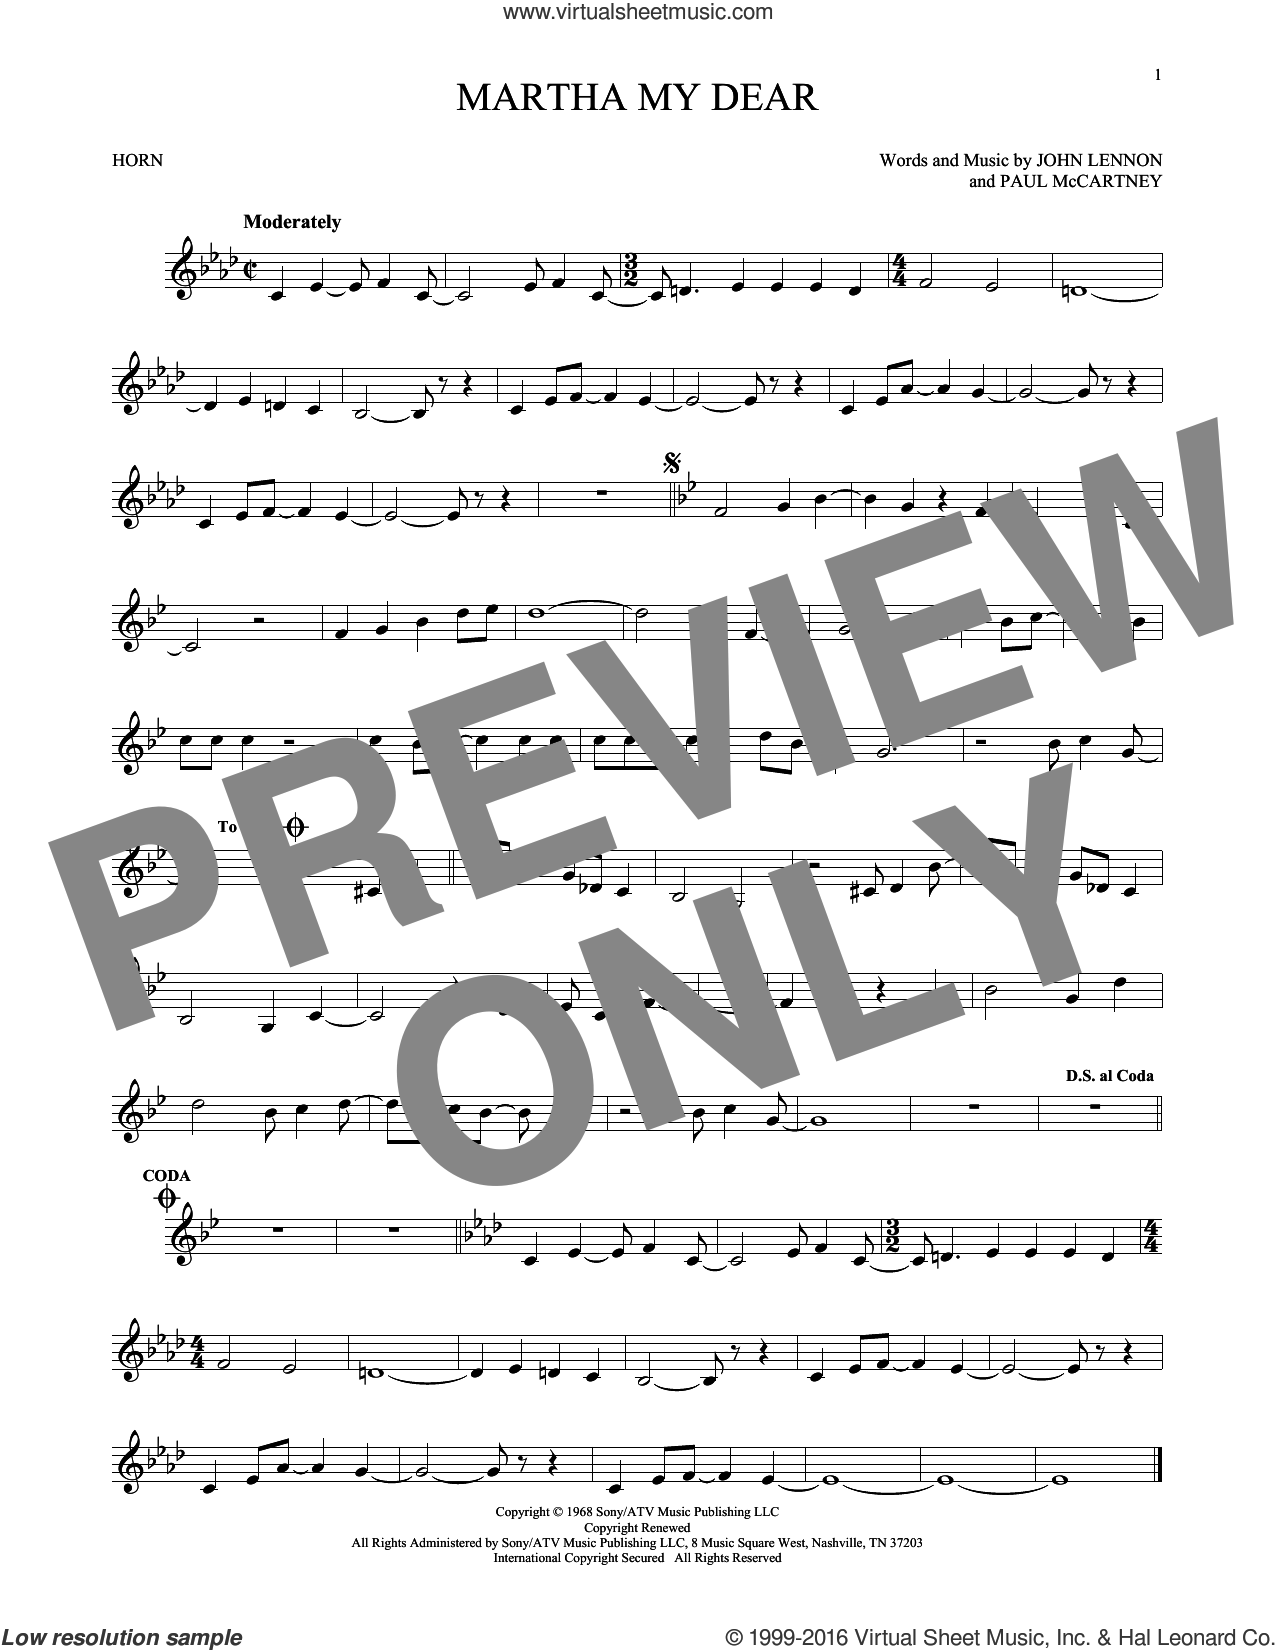 Martha My Dear sheet music for horn solo by The Beatles, John Lennon and Paul McCartney, intermediate skill level